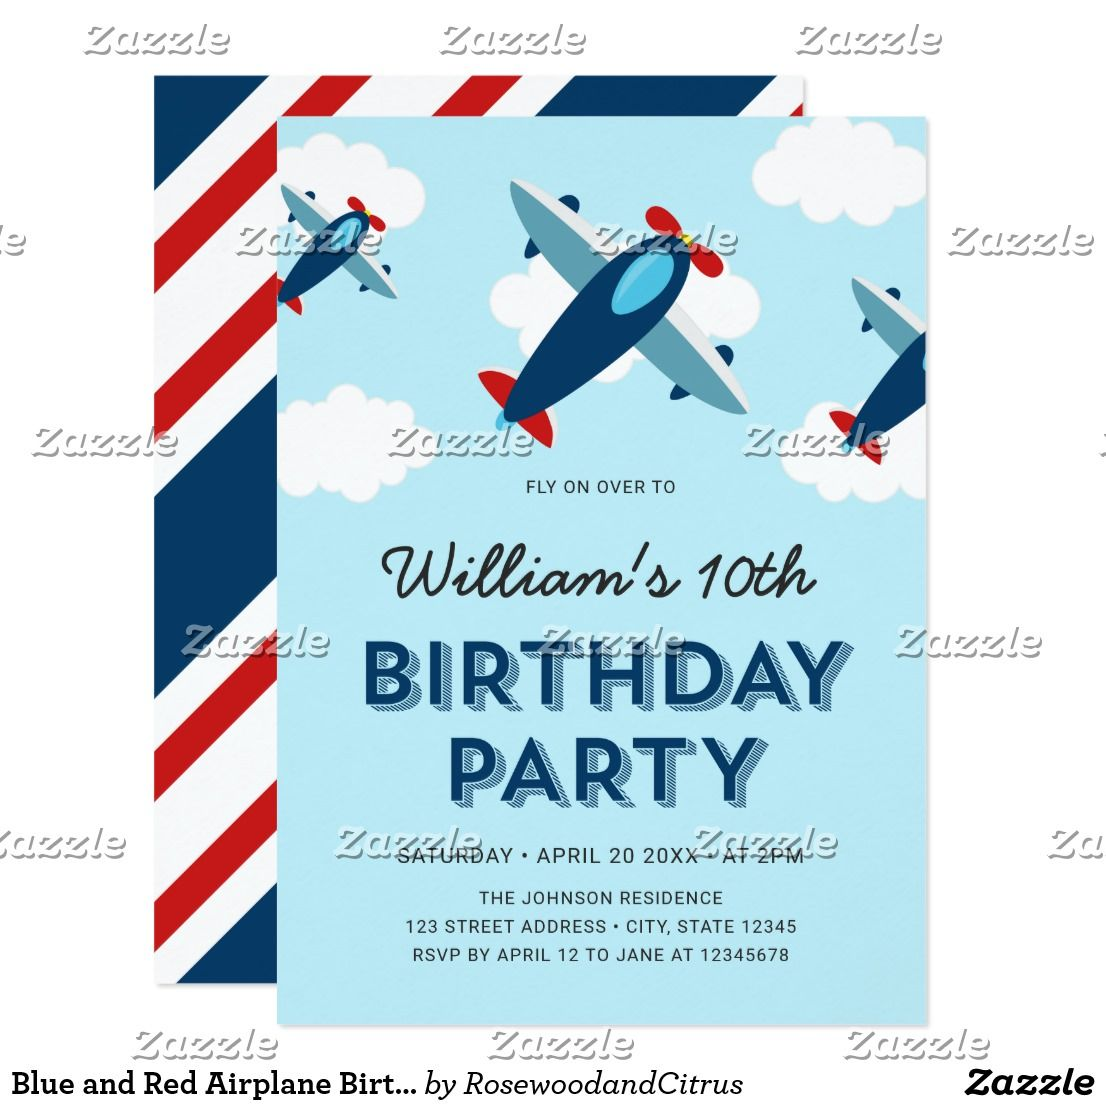 Blue and Red Airplane Birthday Party Invitation Zazzle